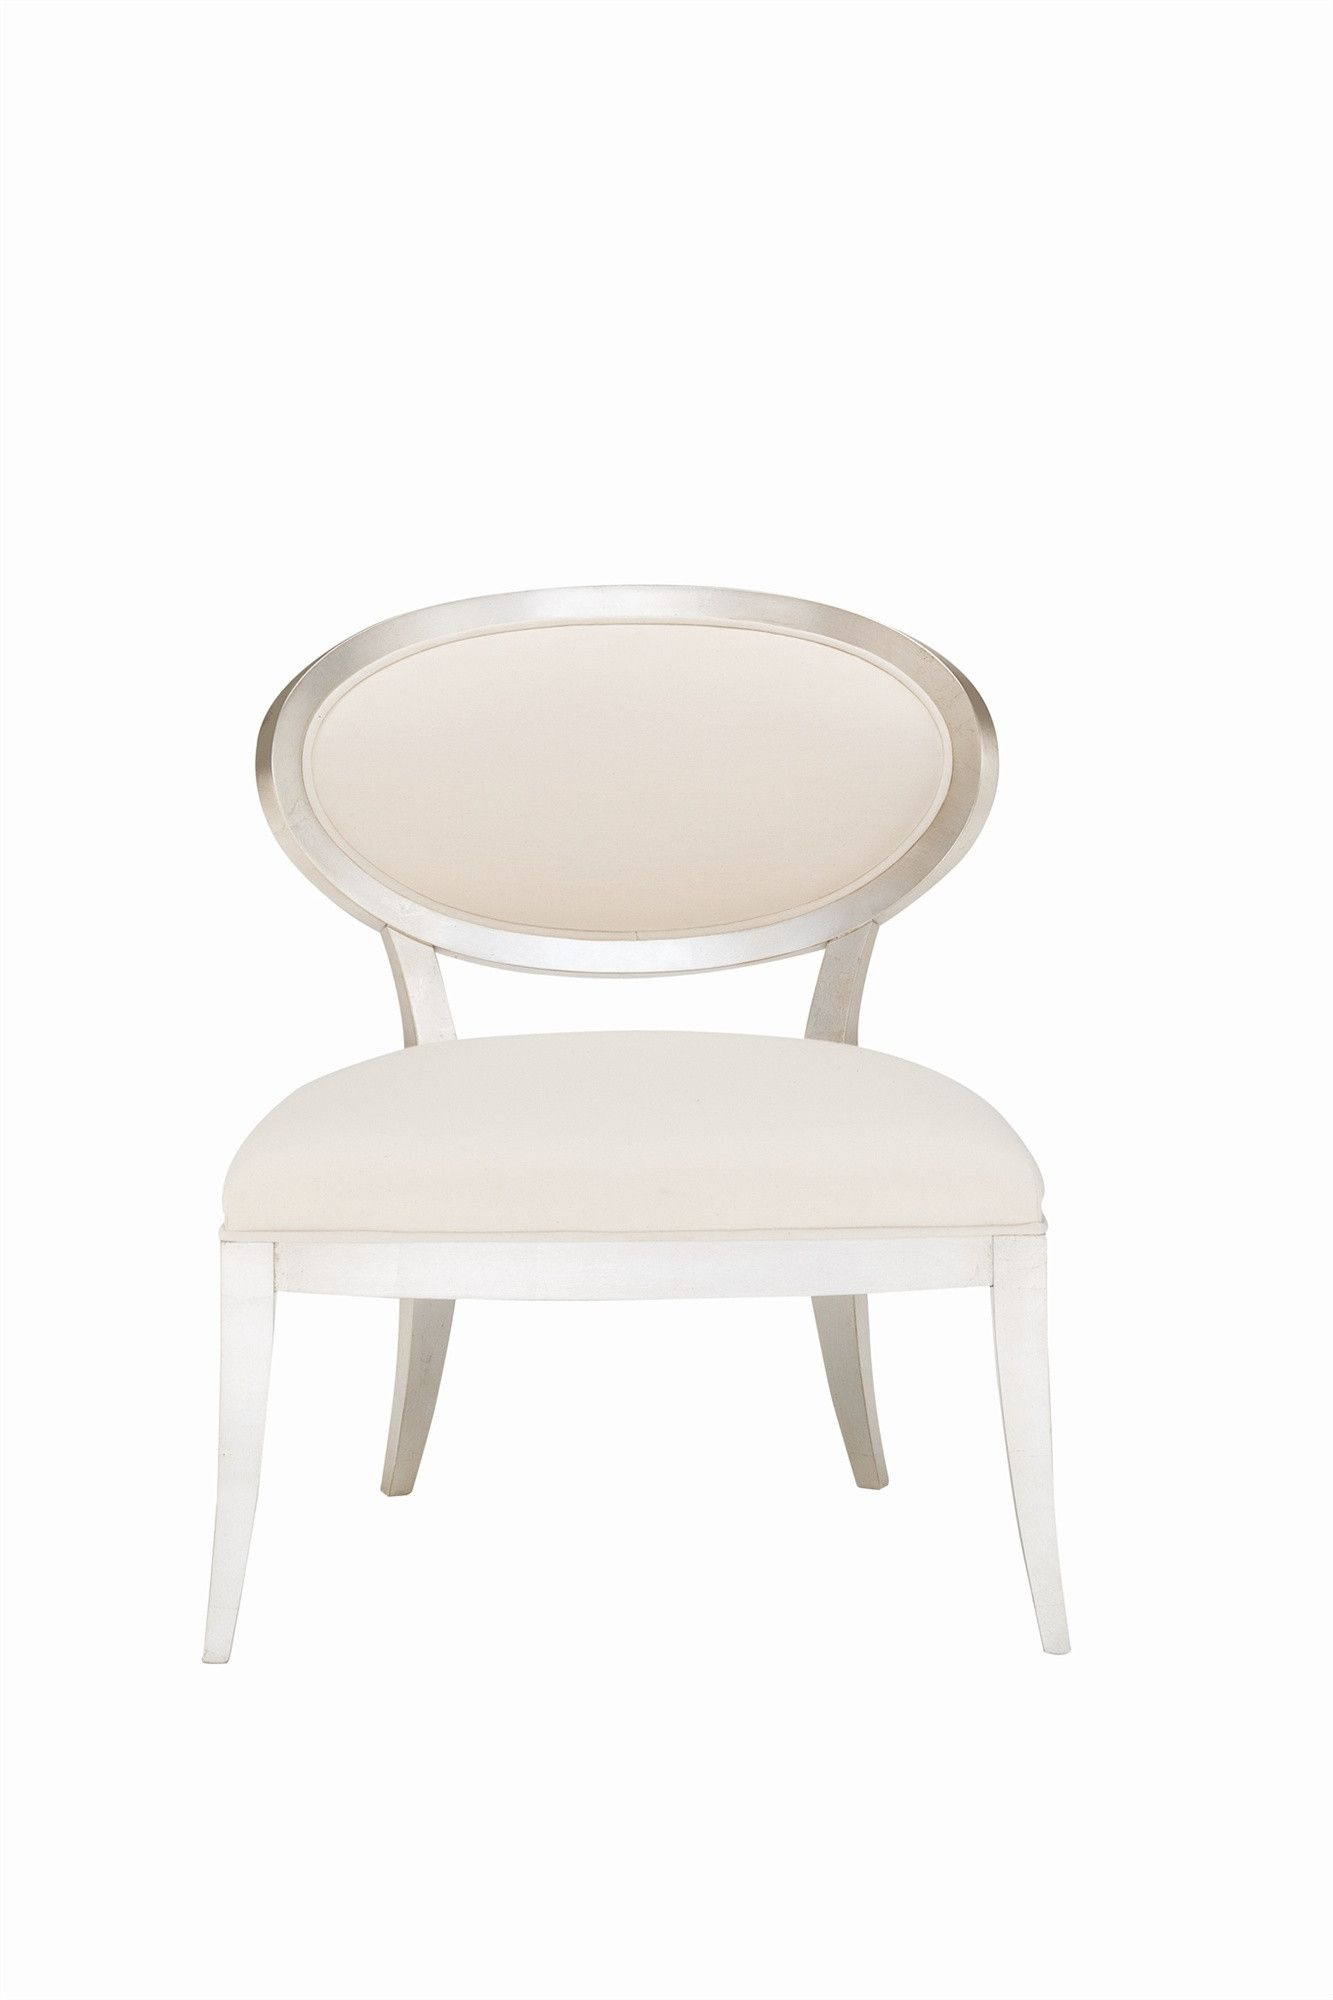 Bacall Chair Design By Currey U0026 Company   From The Home Decor Discovery  Community At Www.DecoandBloom.com